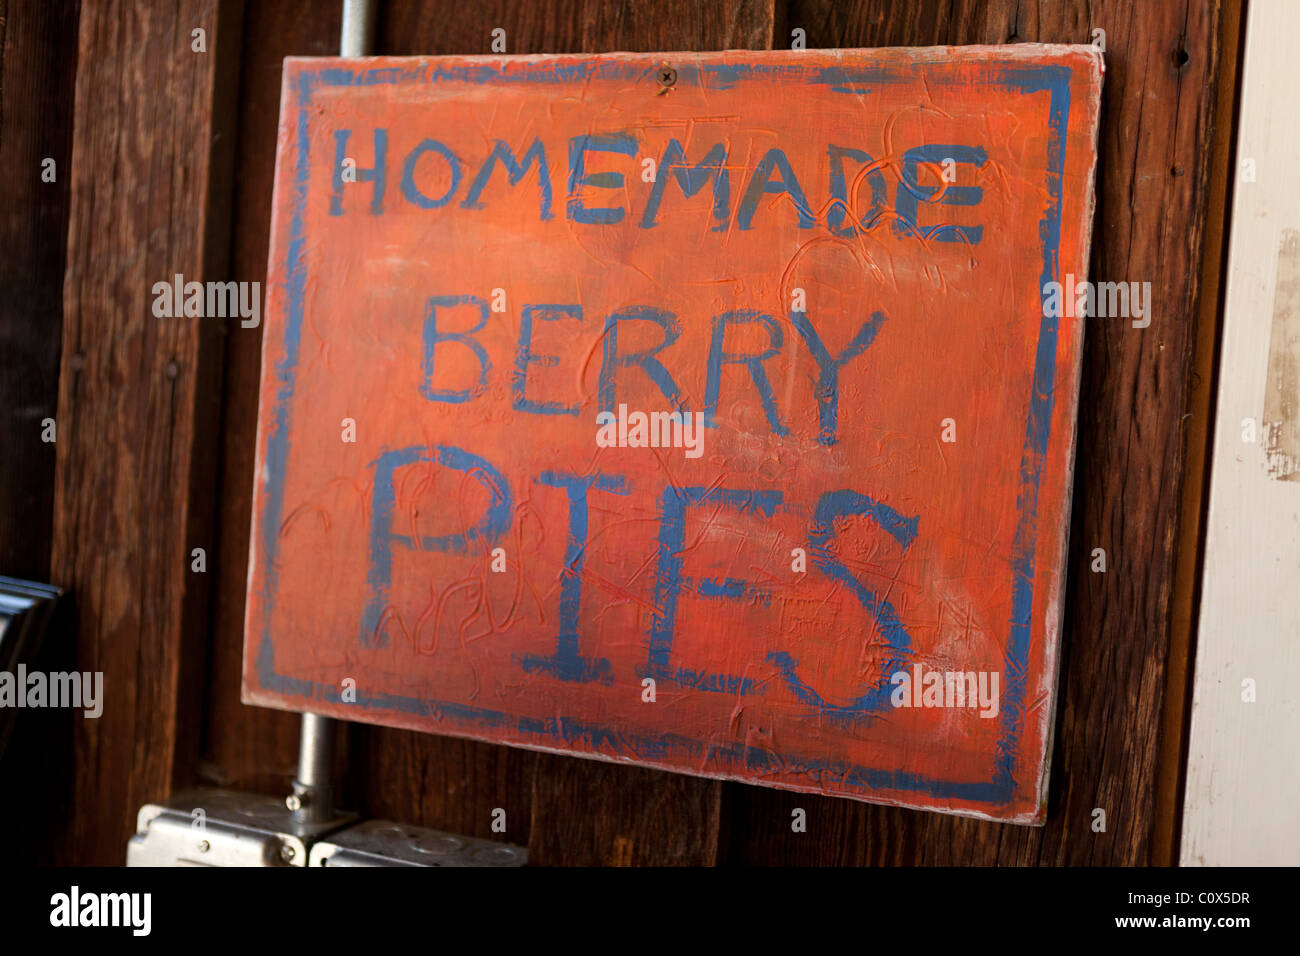 Hand-painted sign reading 'Homemade Berry Pies' on wooden wall. Applegate Valley, Oregon.  Pennington Farms. - Stock Image